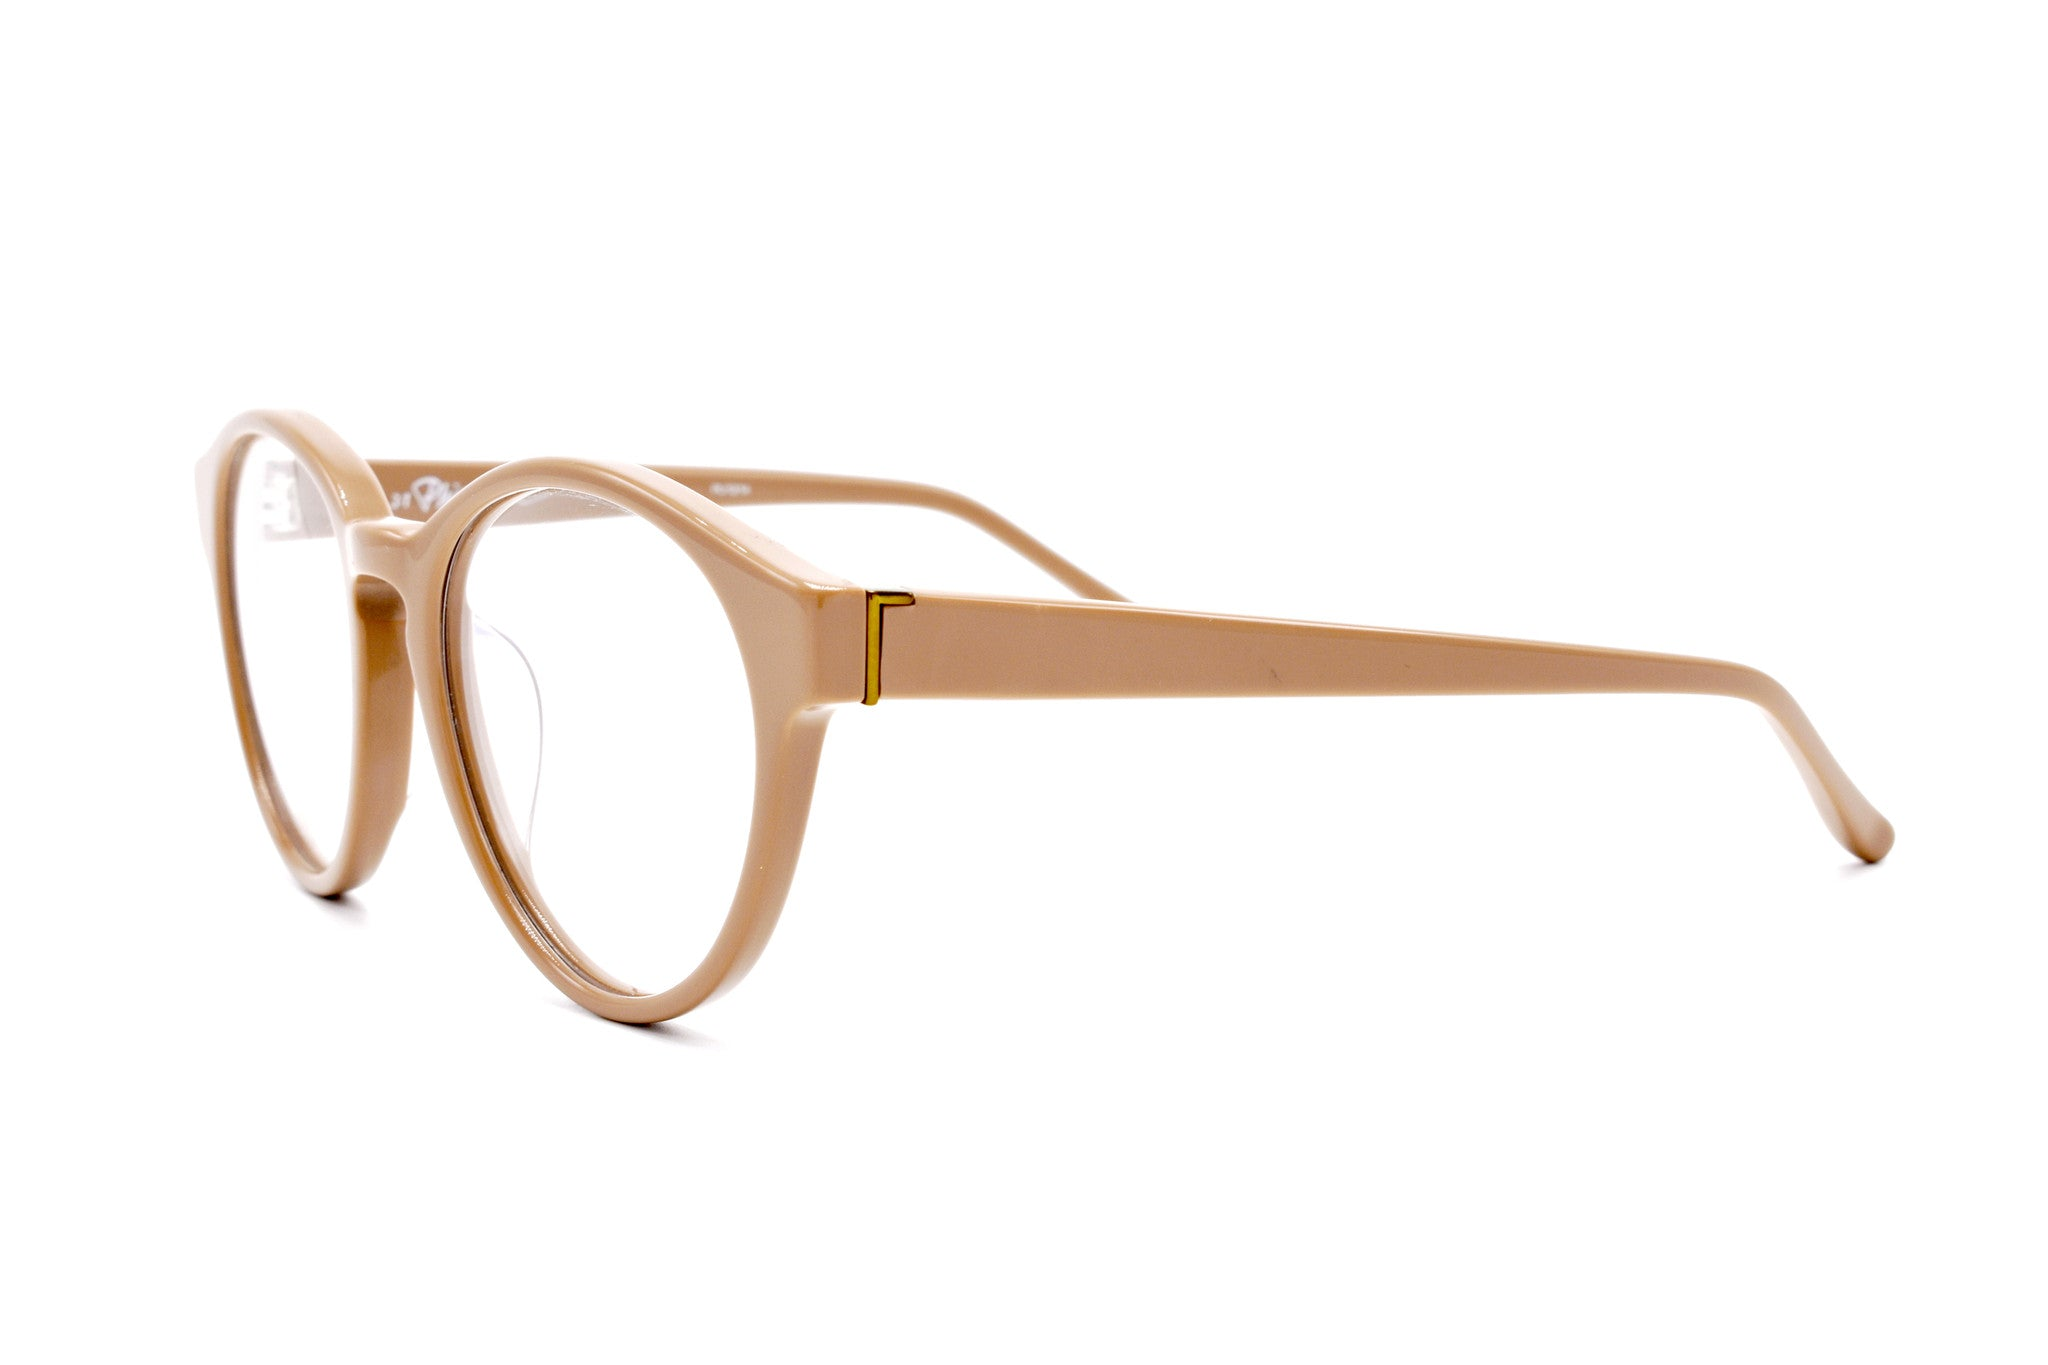 3.1 Phillip Lim Glasses